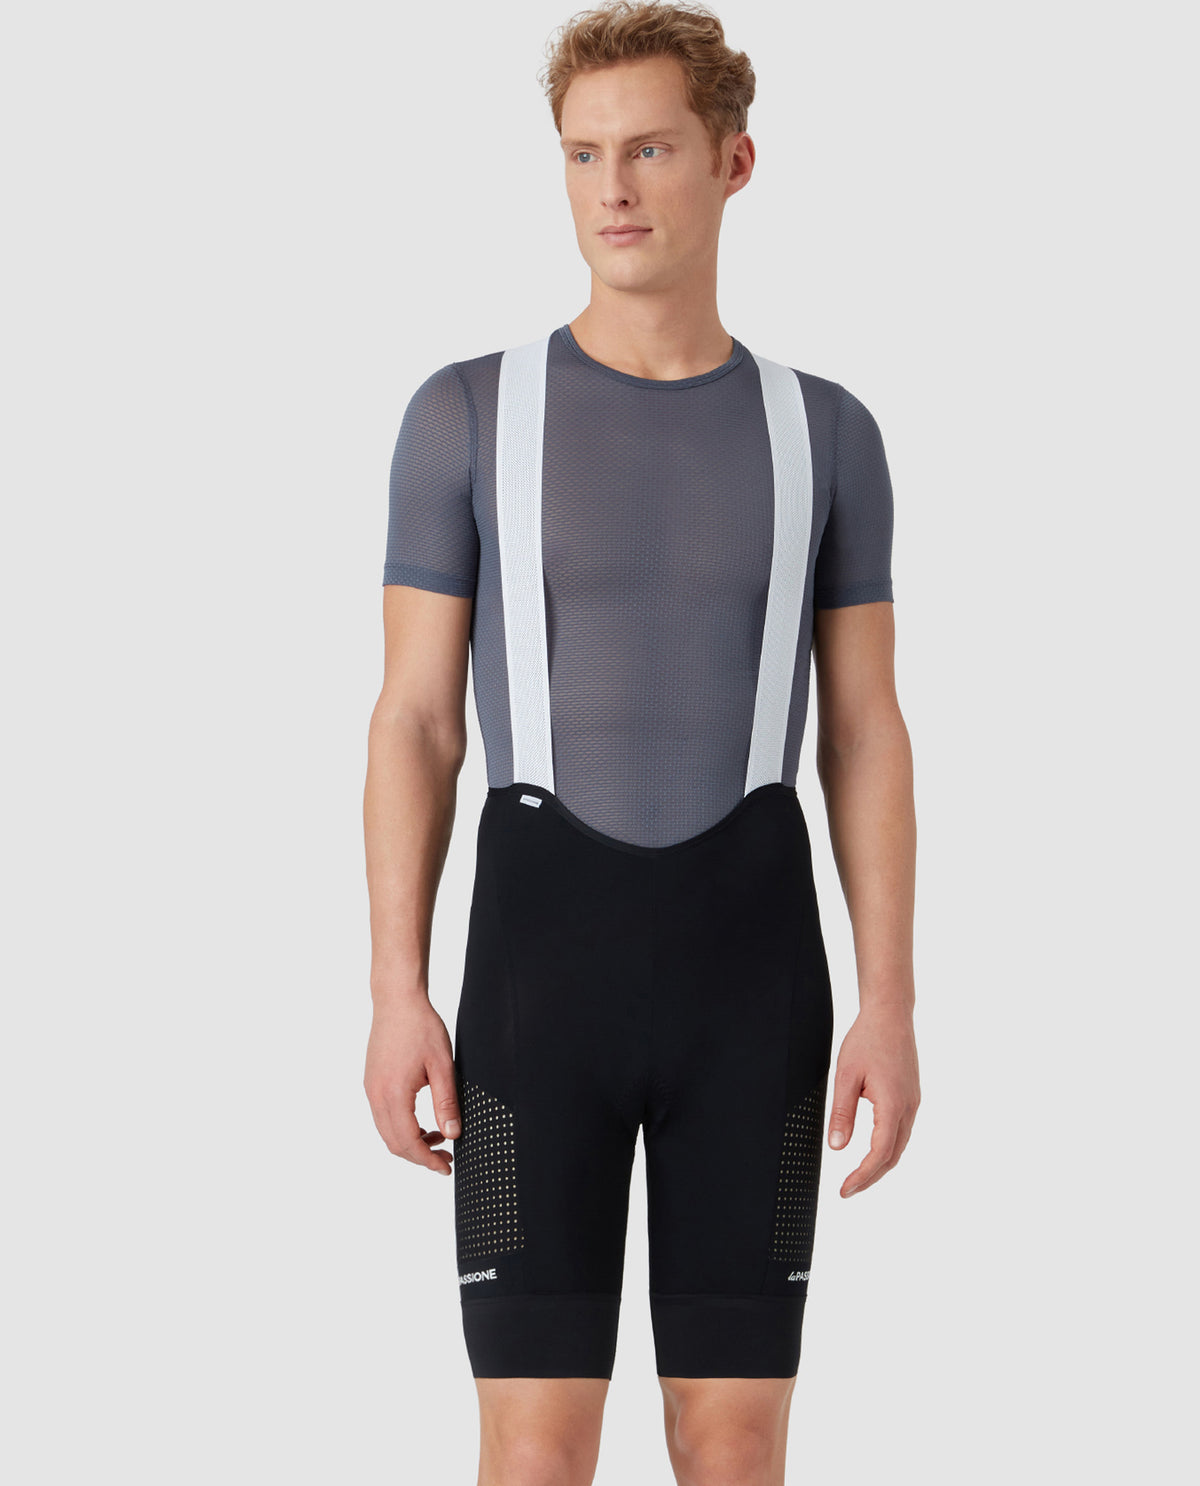 NDR Bib Shorts Black